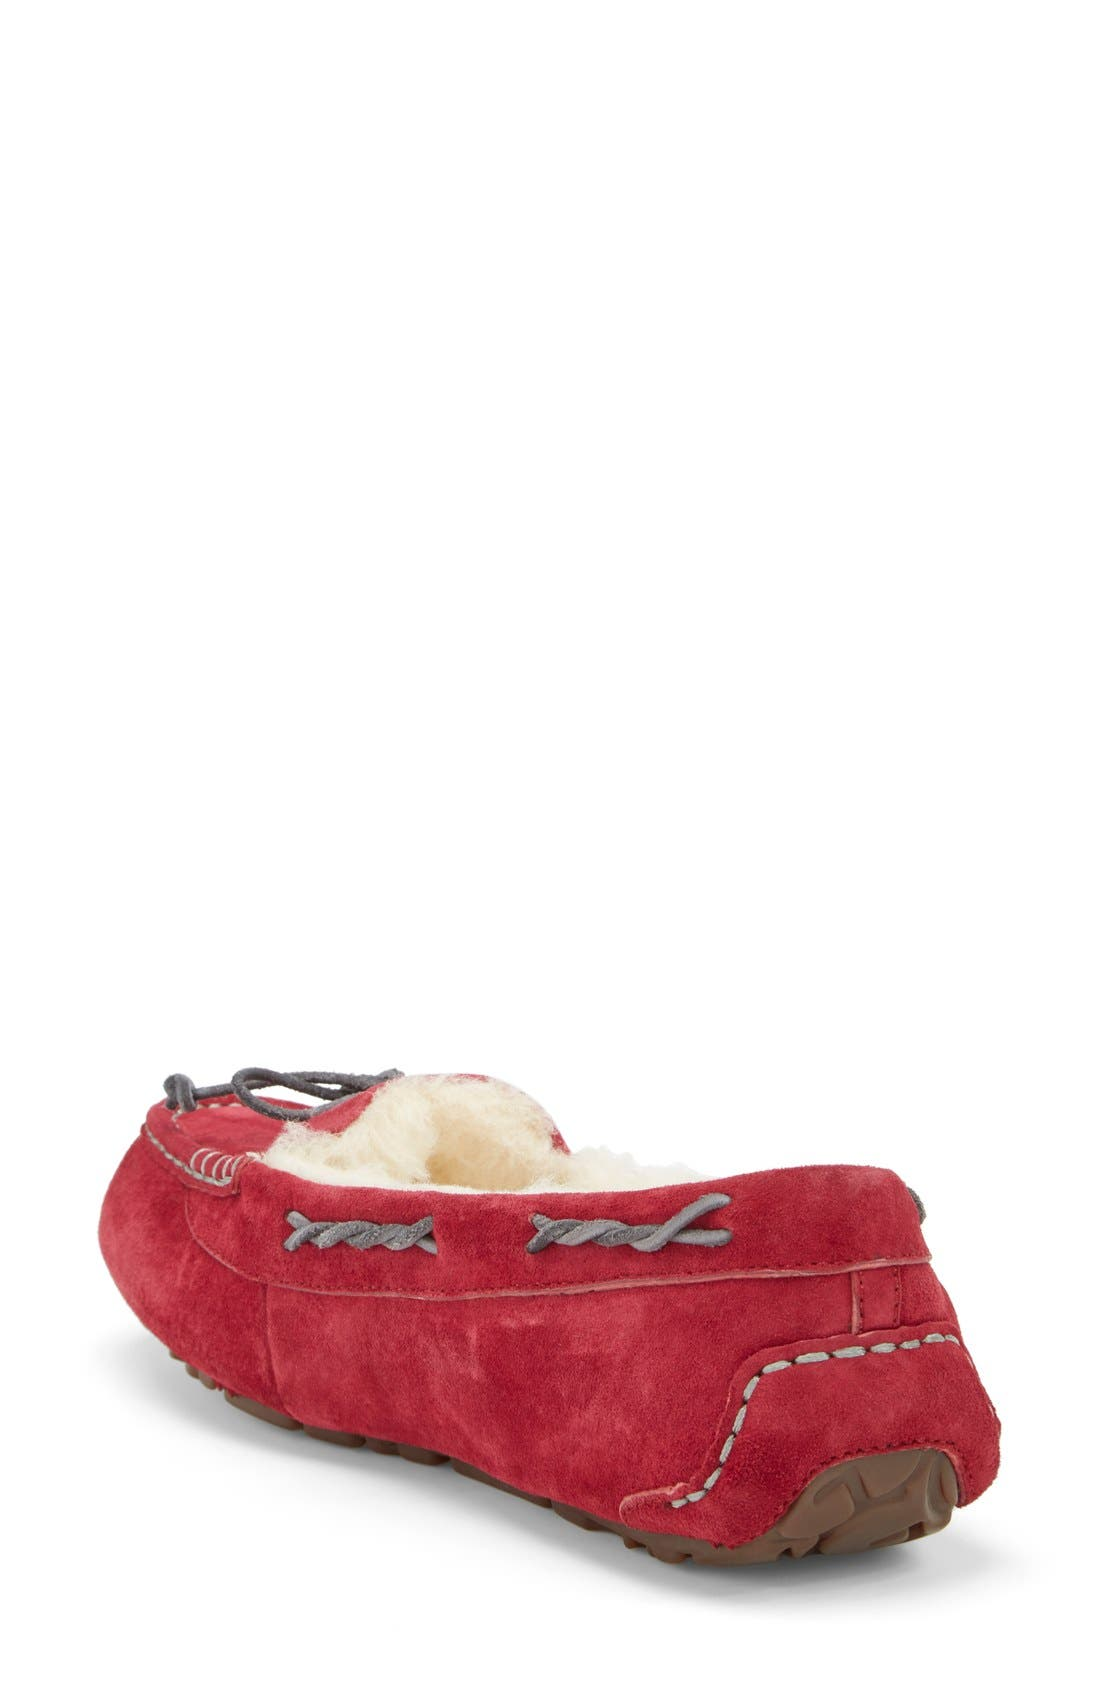 Alternate Image 2  - UGG® Australia 'Tate' Slipper (Women)